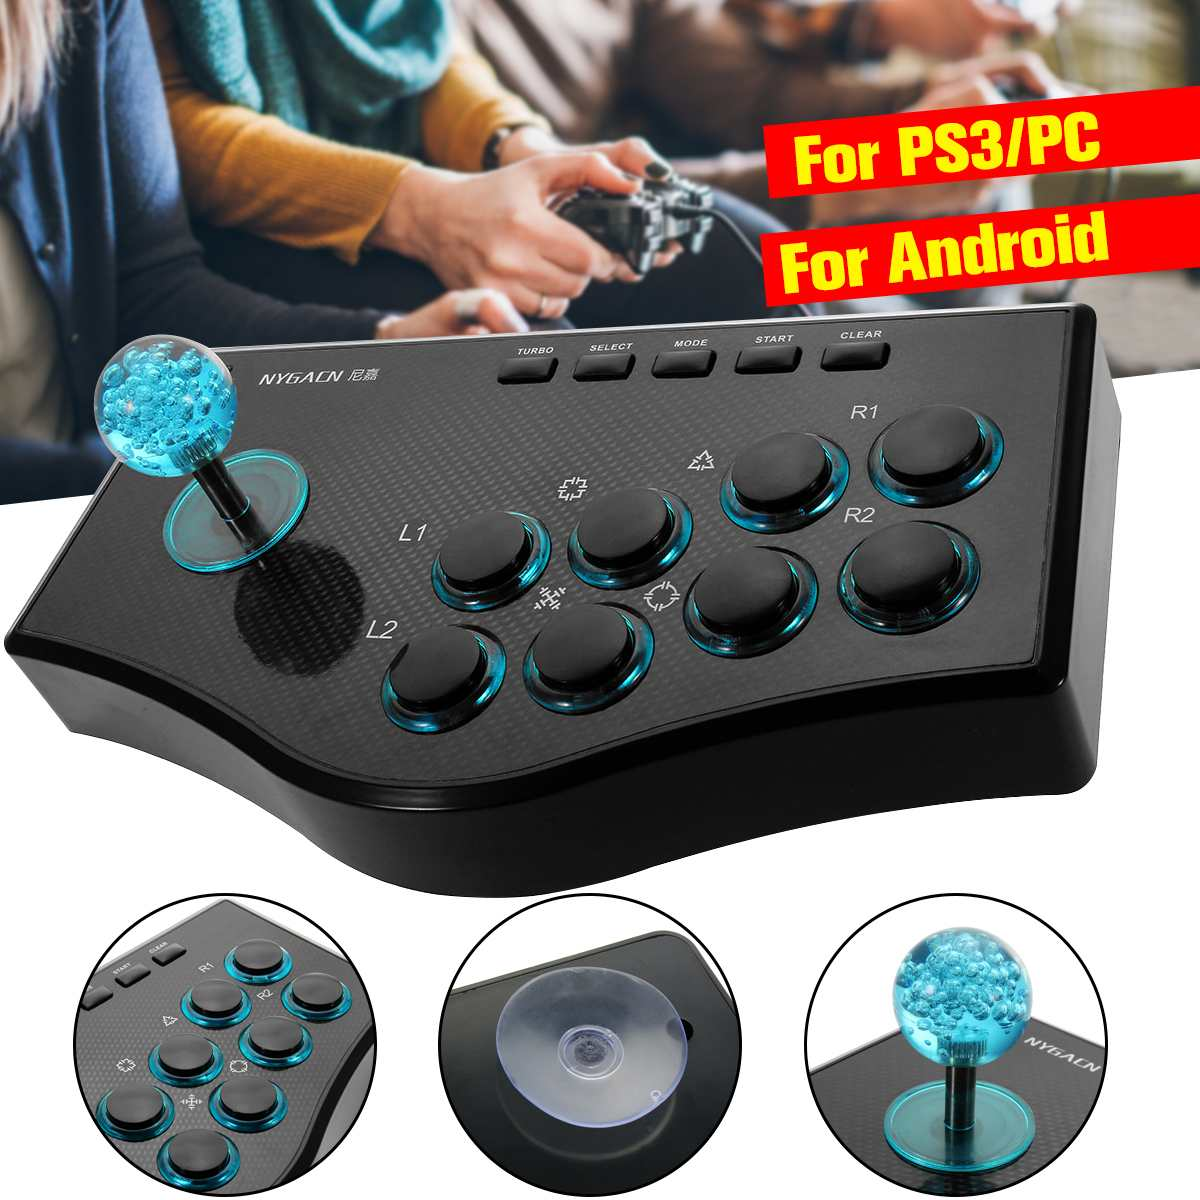 USB Rocker Game Controller Arcade Joystick Gamepad Fighting Stick For PS3/PC For Android Plug And Play Street Fighting Feeling(China)